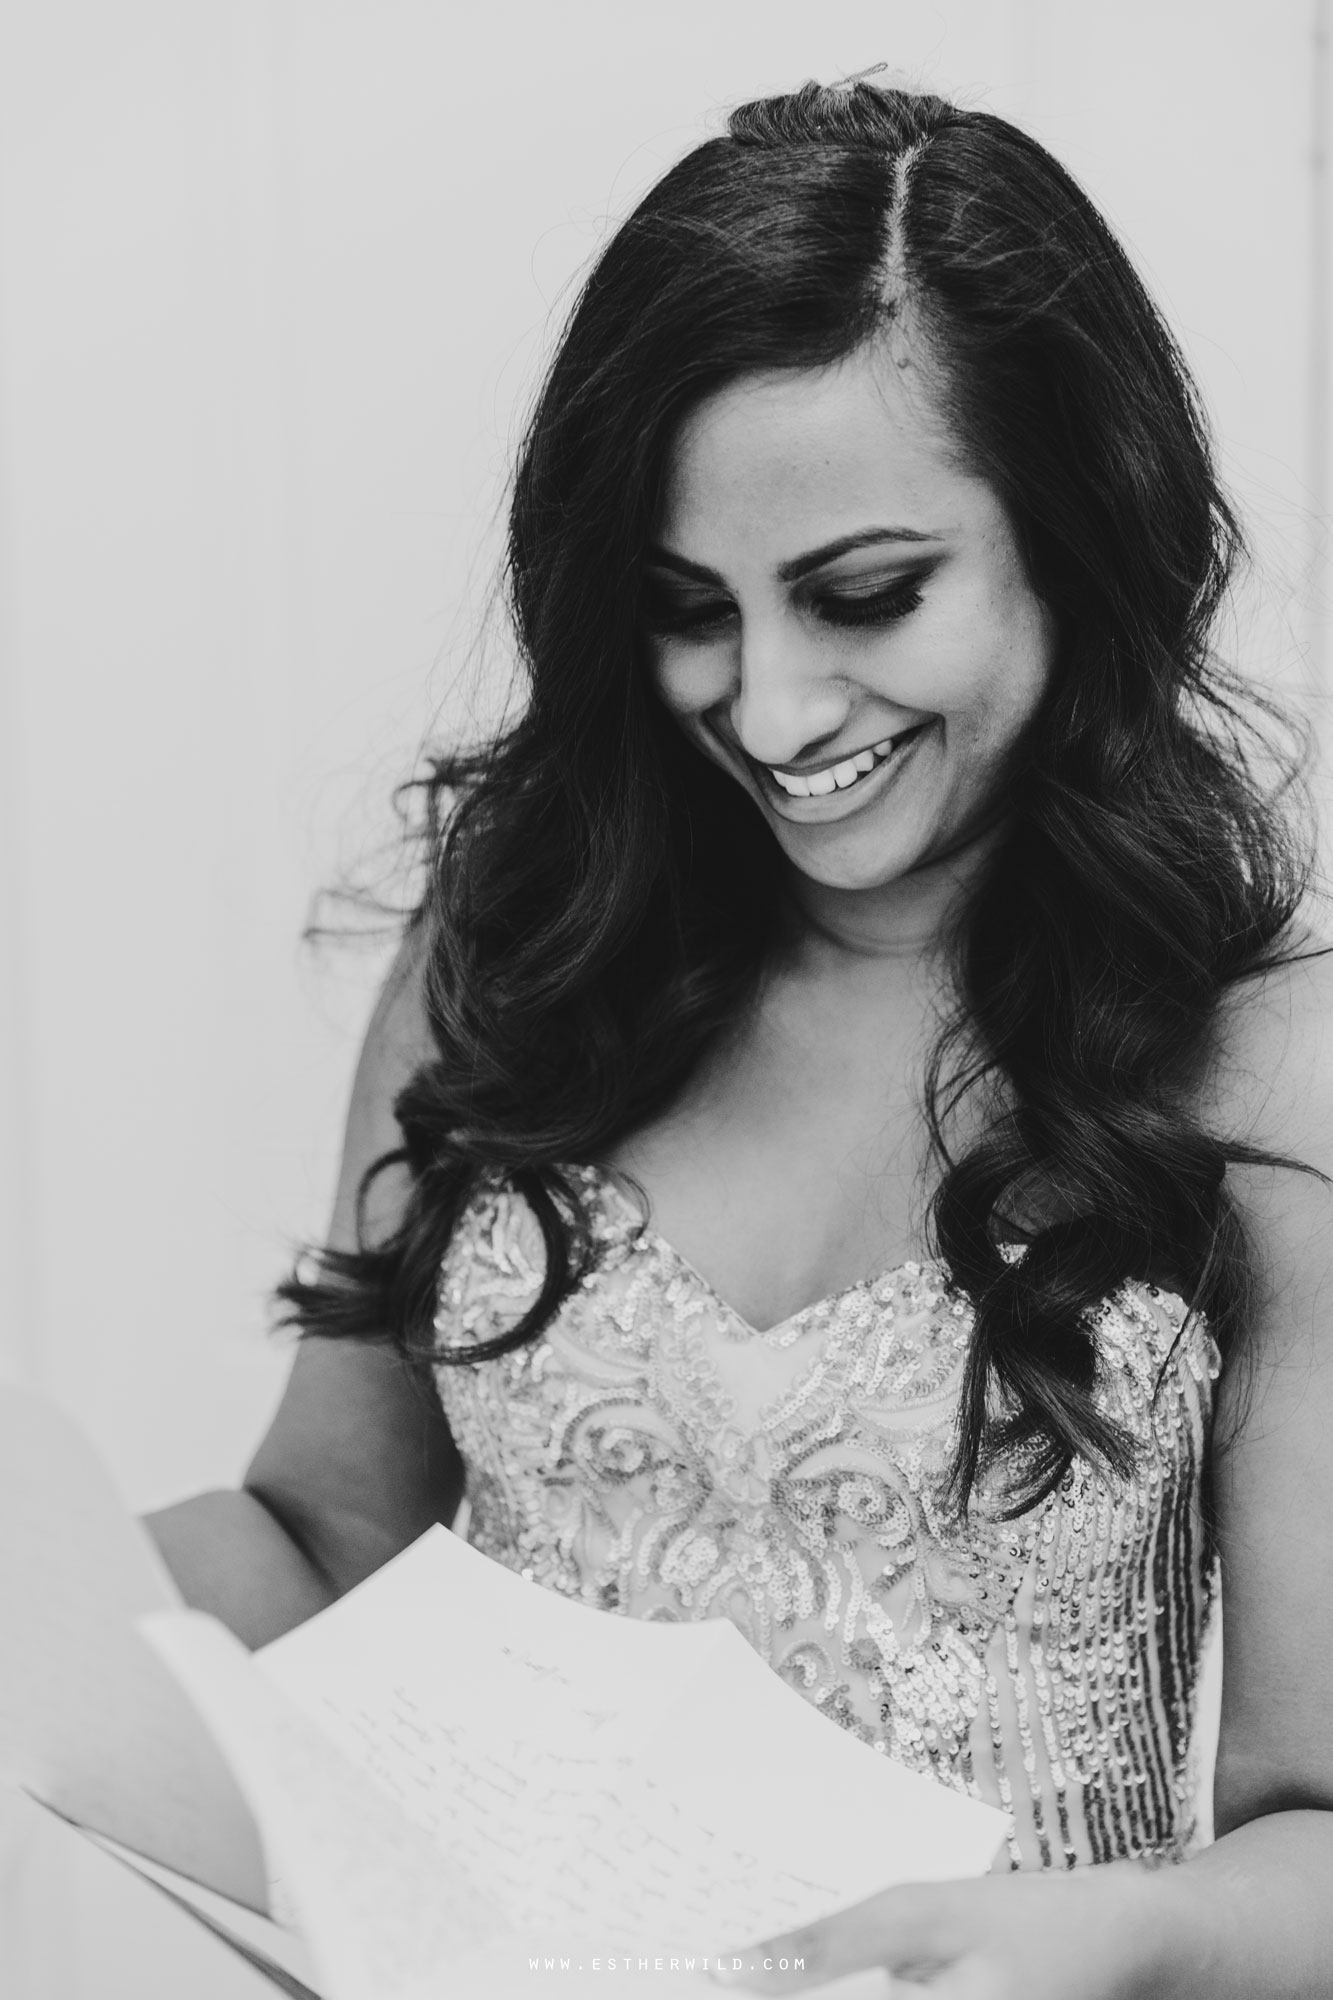 Twickenham_Registry_Office_London_Wedding_Ceremony_Esther_Wild_Photographer_IMG_0127-2.jpg